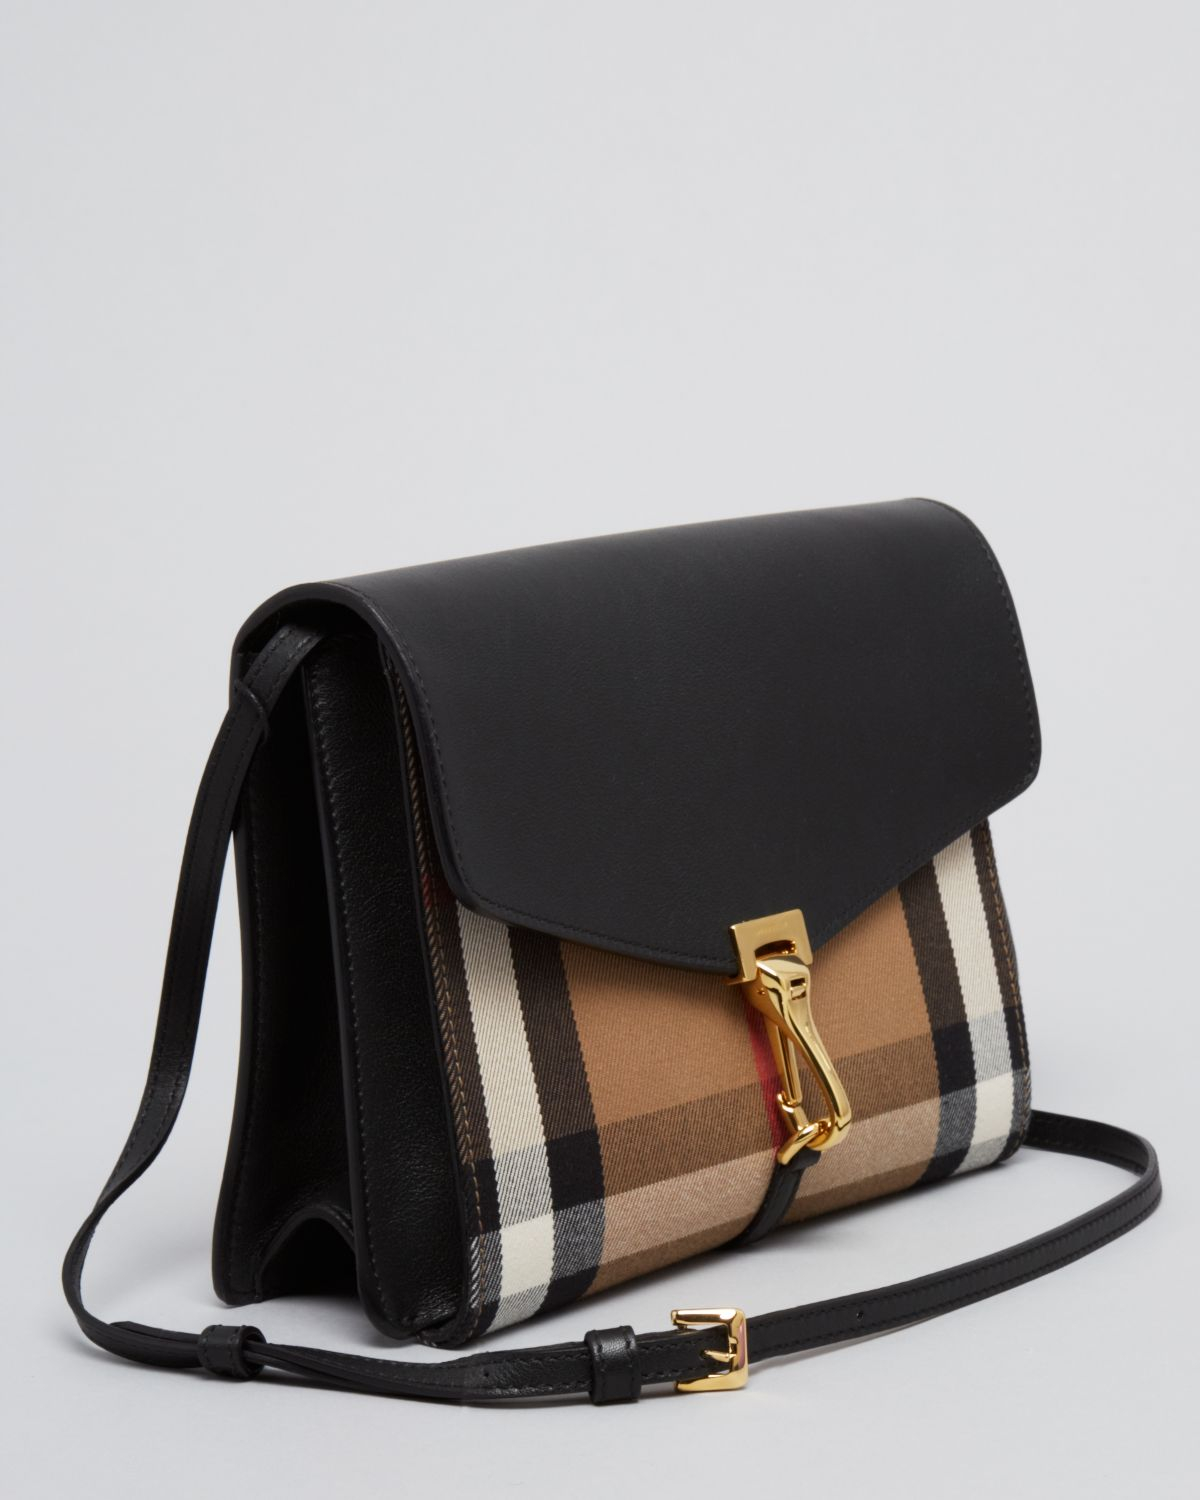 Lyst - Burberry Crossbody House Check Sartorial Small Macken in Black 1560f0cd4